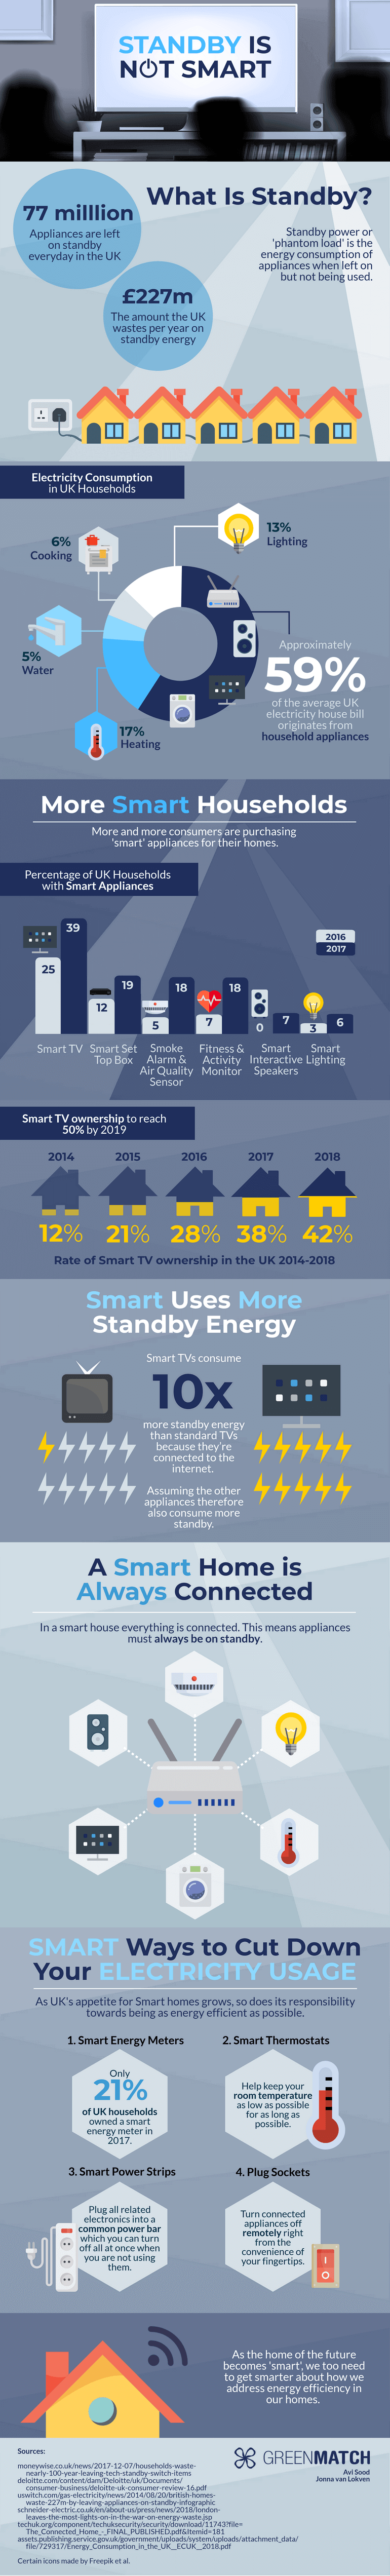 Infographic About Smart Appliances and Standby Energy